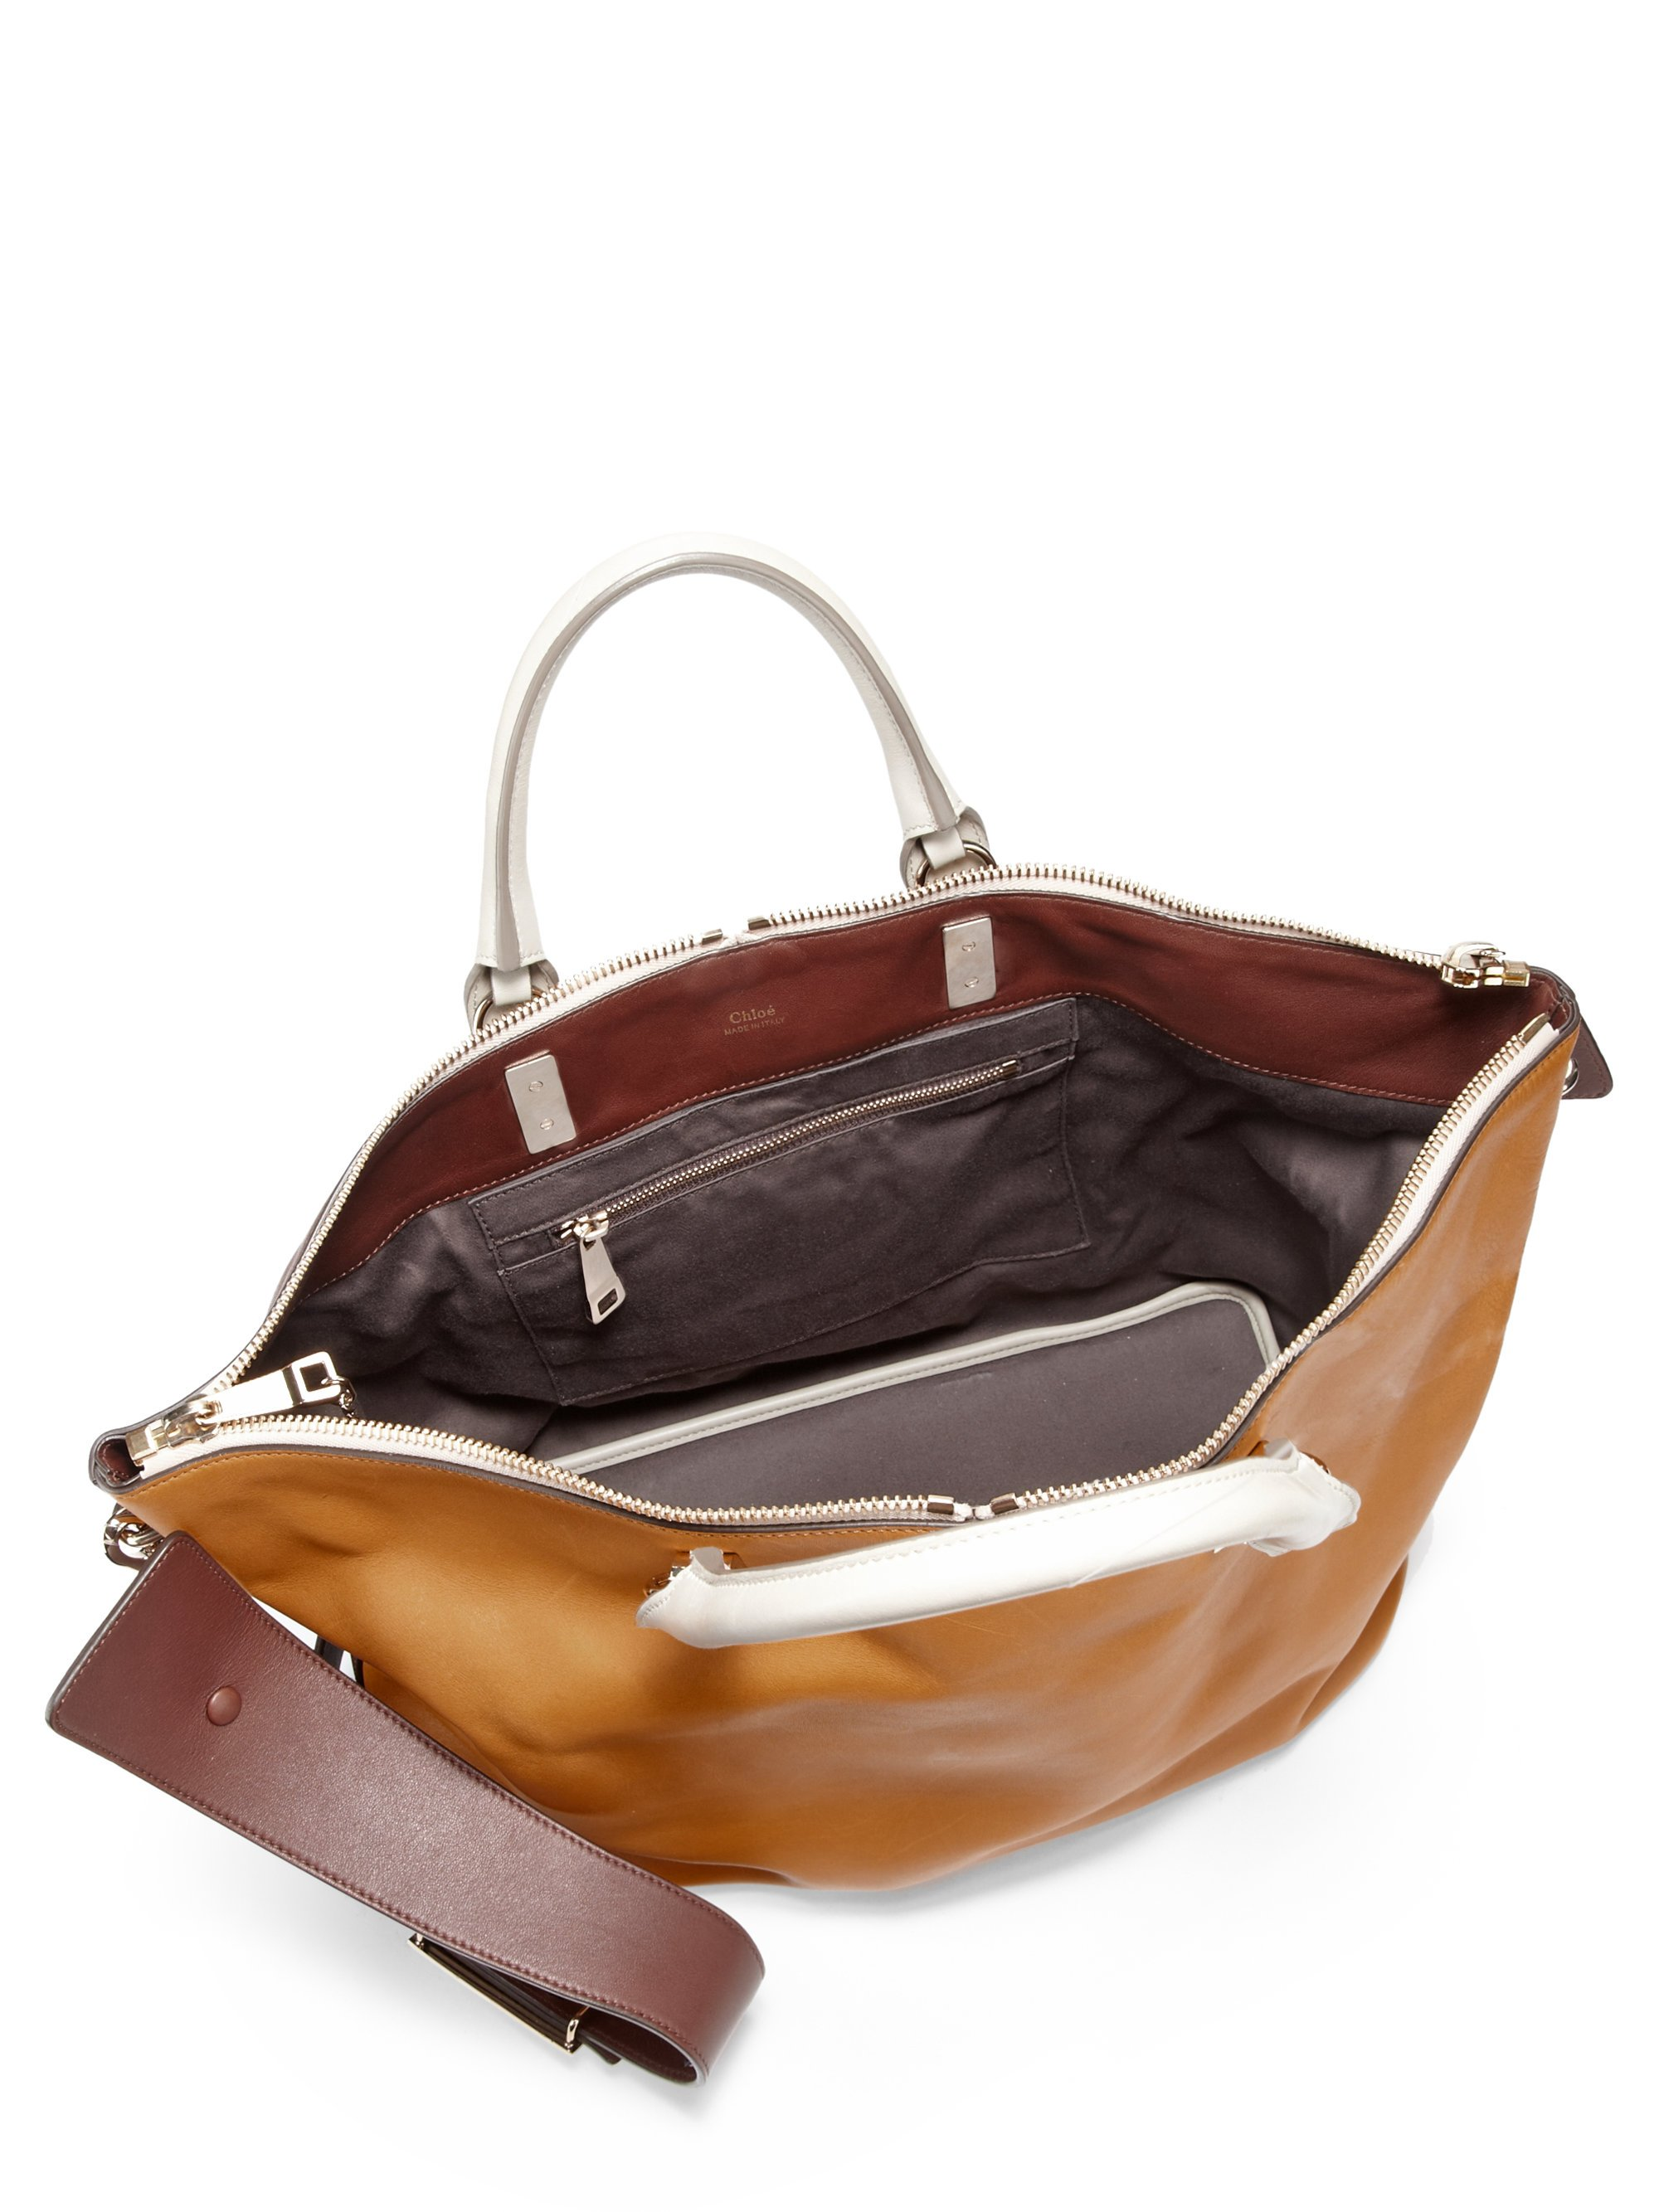 purse chloe - Chlo�� Baylee Large Colorblock Satchel in Brown (MARSHMALLO) | Lyst